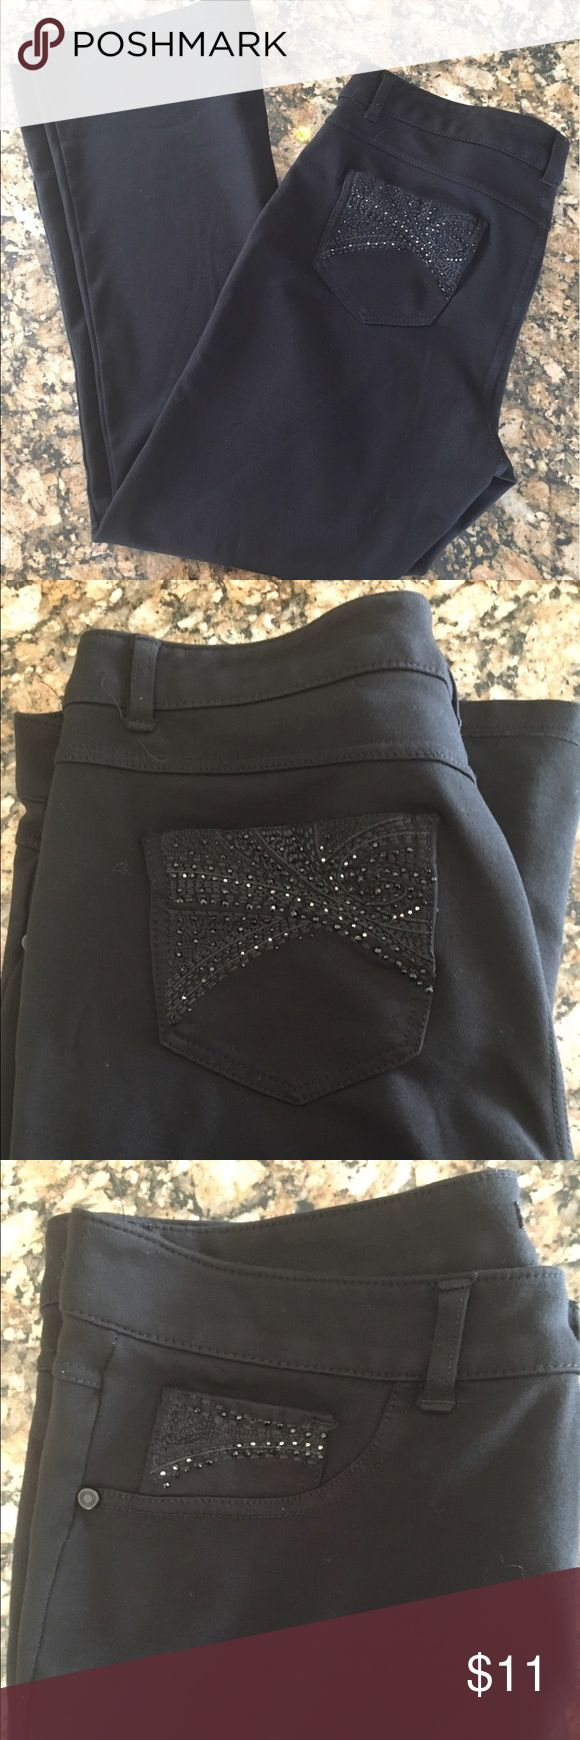 Roz and Ali Stretch Knit pants with Jean styling Great condition!  These are jet black, the sunlight won't allow me to capture how dark they are!  ☀️. Beautiful beading and stitching on the back and coin pockets.  I am 5'9 and these shrunk on me when I washed them.  They are thin enough to tuck into tall boots (I did!) or wear as an ankle pant.  Very slight bootcut.  Slight wear on button as shown in picture, otherwise no stains, marks piling or other signs of wear. Fabric content and…